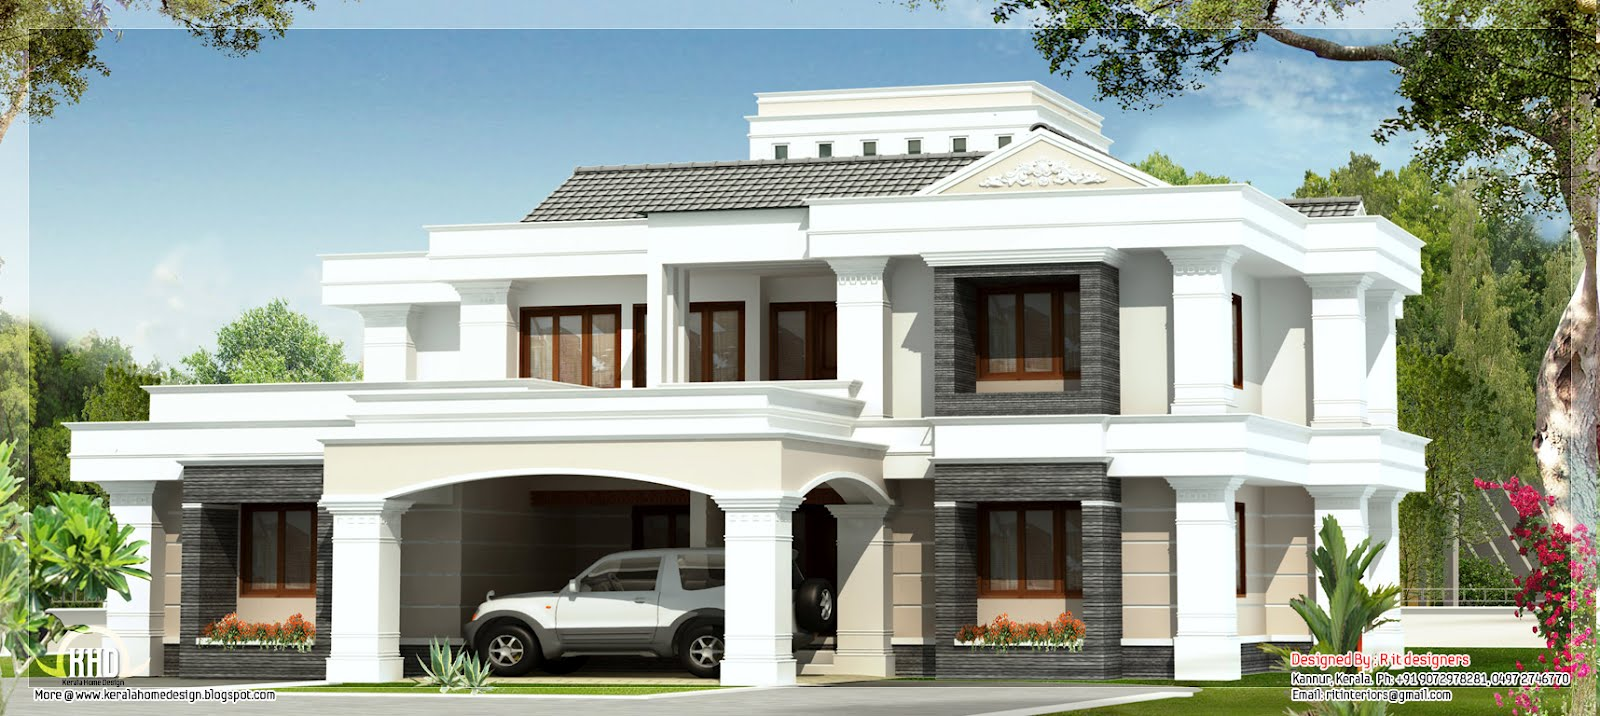 Kerala home decor kerala home decor for 4 bed new build house